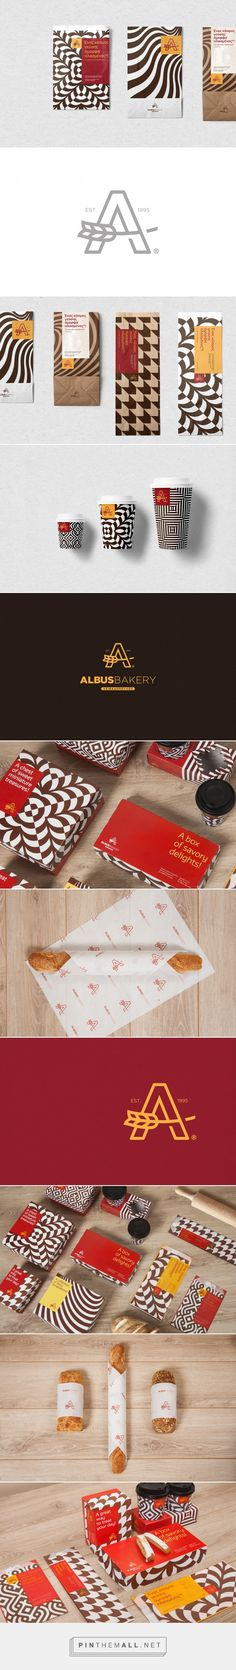 Albus Bakeries visual identity on Behance... - a grouped images picture - Pin Them All